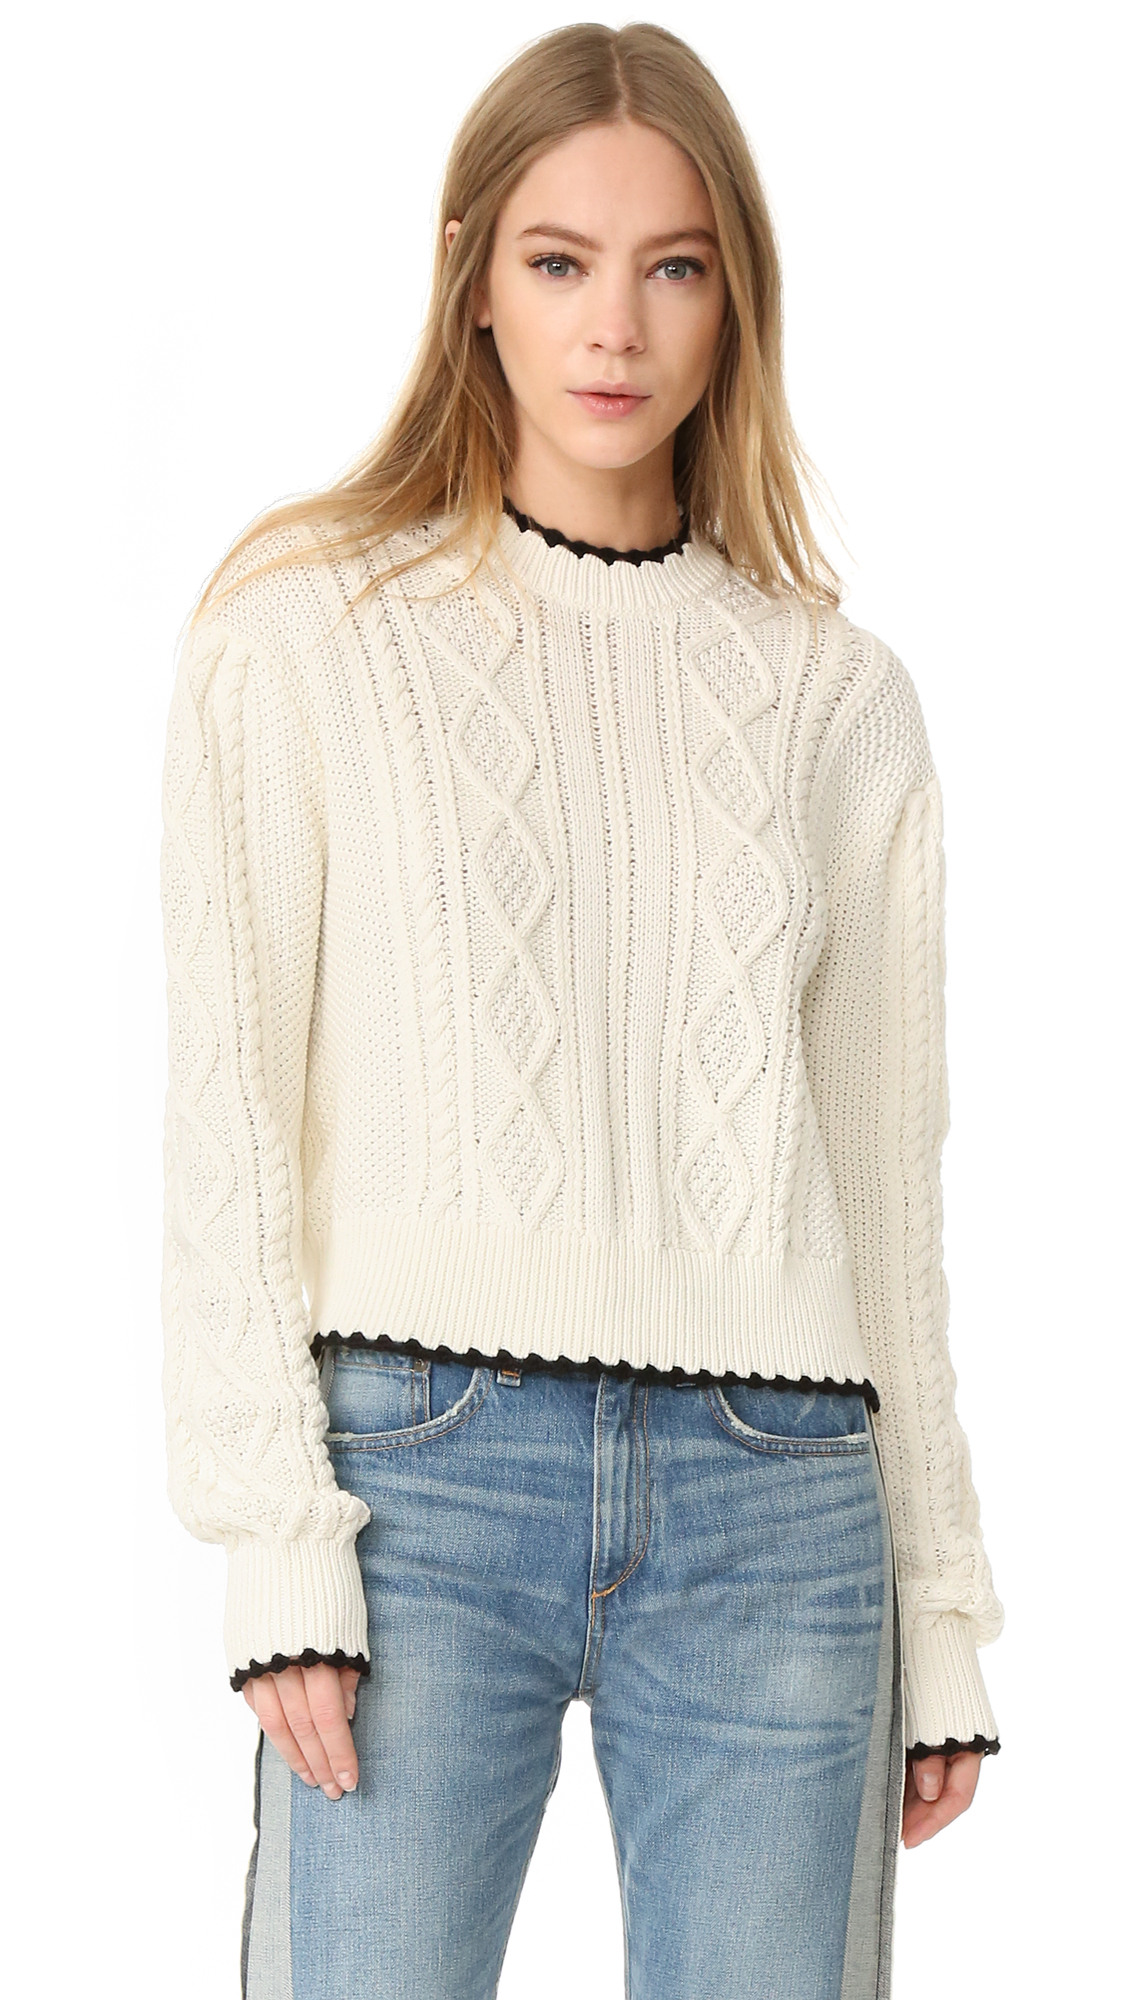 Contrast, scalloped trim accents the edges of this cable knit McQ   Alexander McQueen sweater. A button back keyhole secures the high neckline. Ribbed edges. Long sleeves. Fabric: Knit. Shell: 100% cotton. Trim: 100% wool. Hand wash or dry